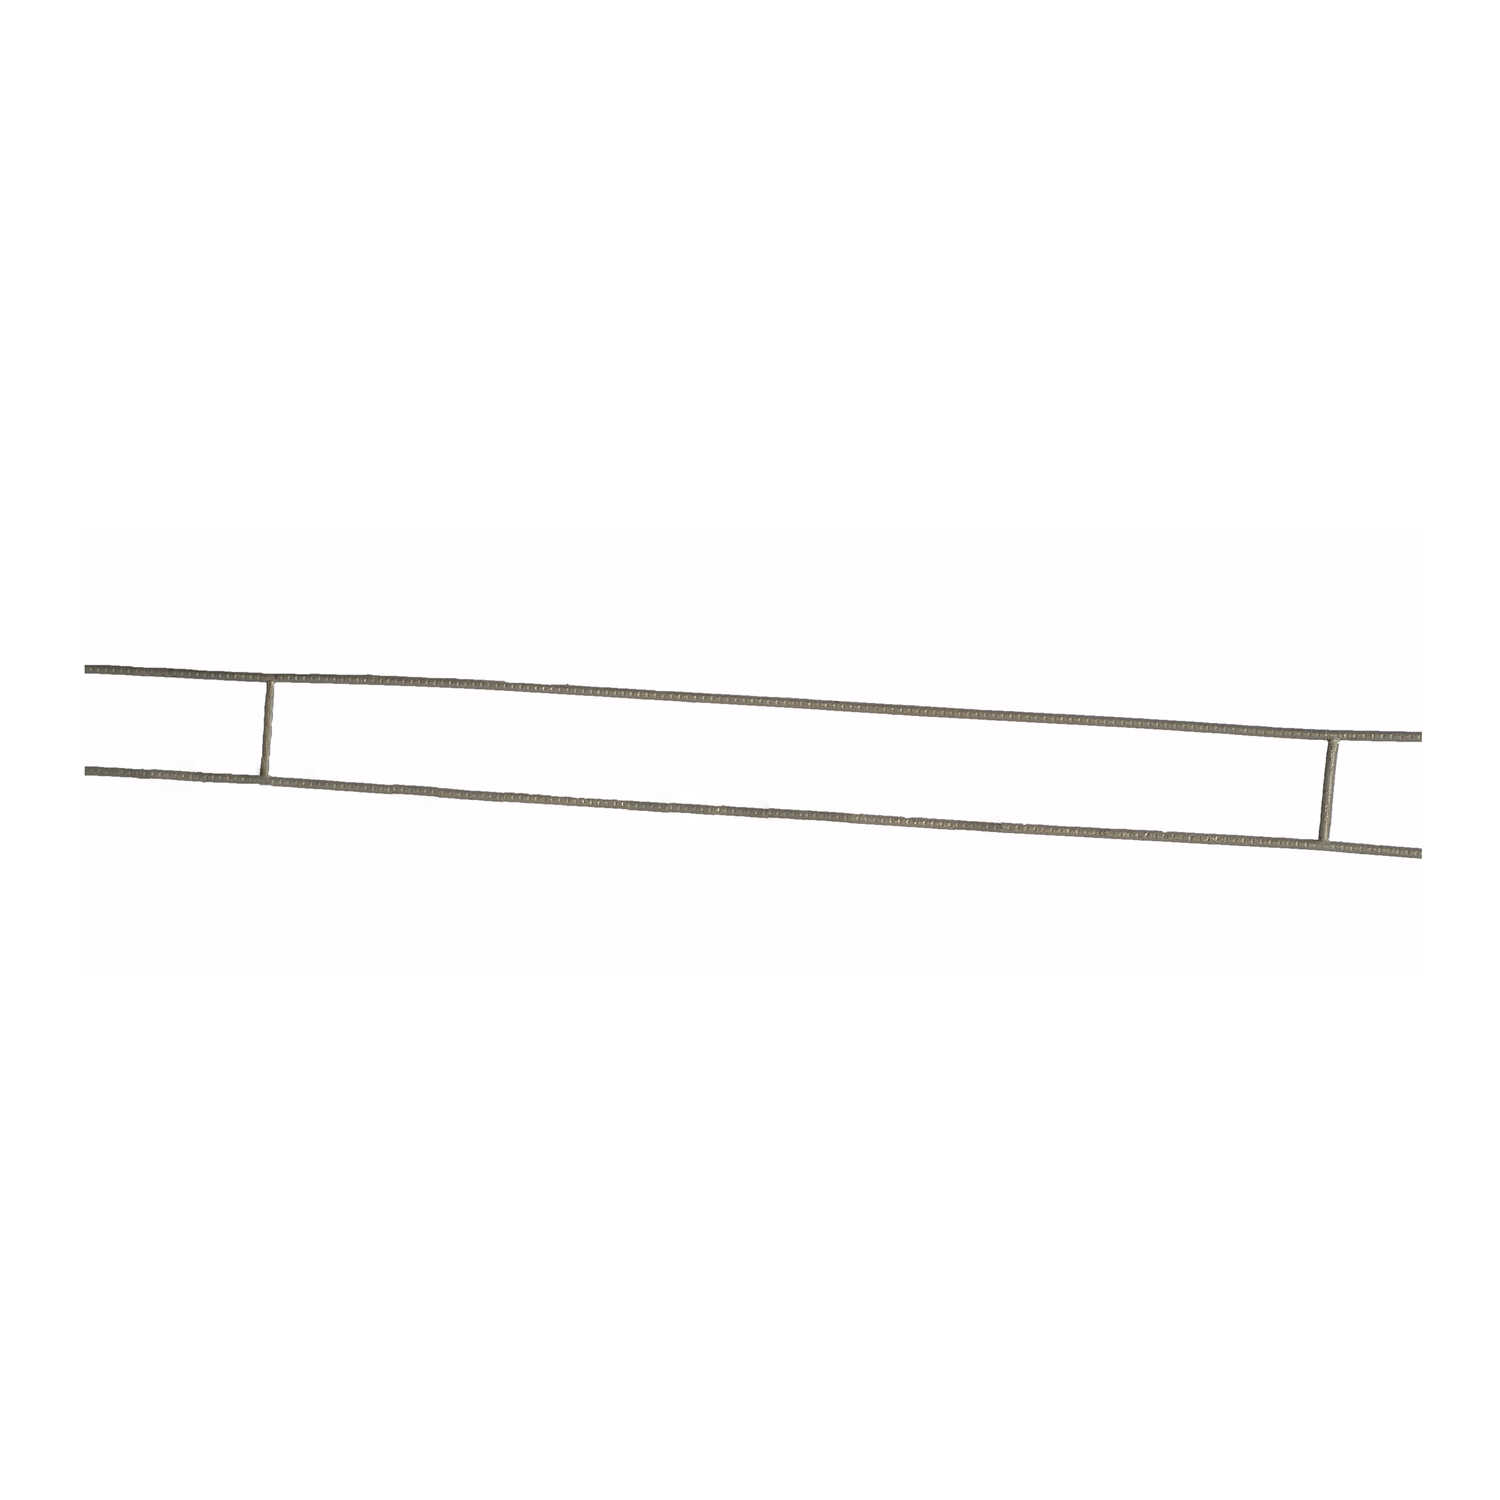 Wire Bond  0.25 in. H x 10 in. W x 0.25 in. D Reinforcing Panel